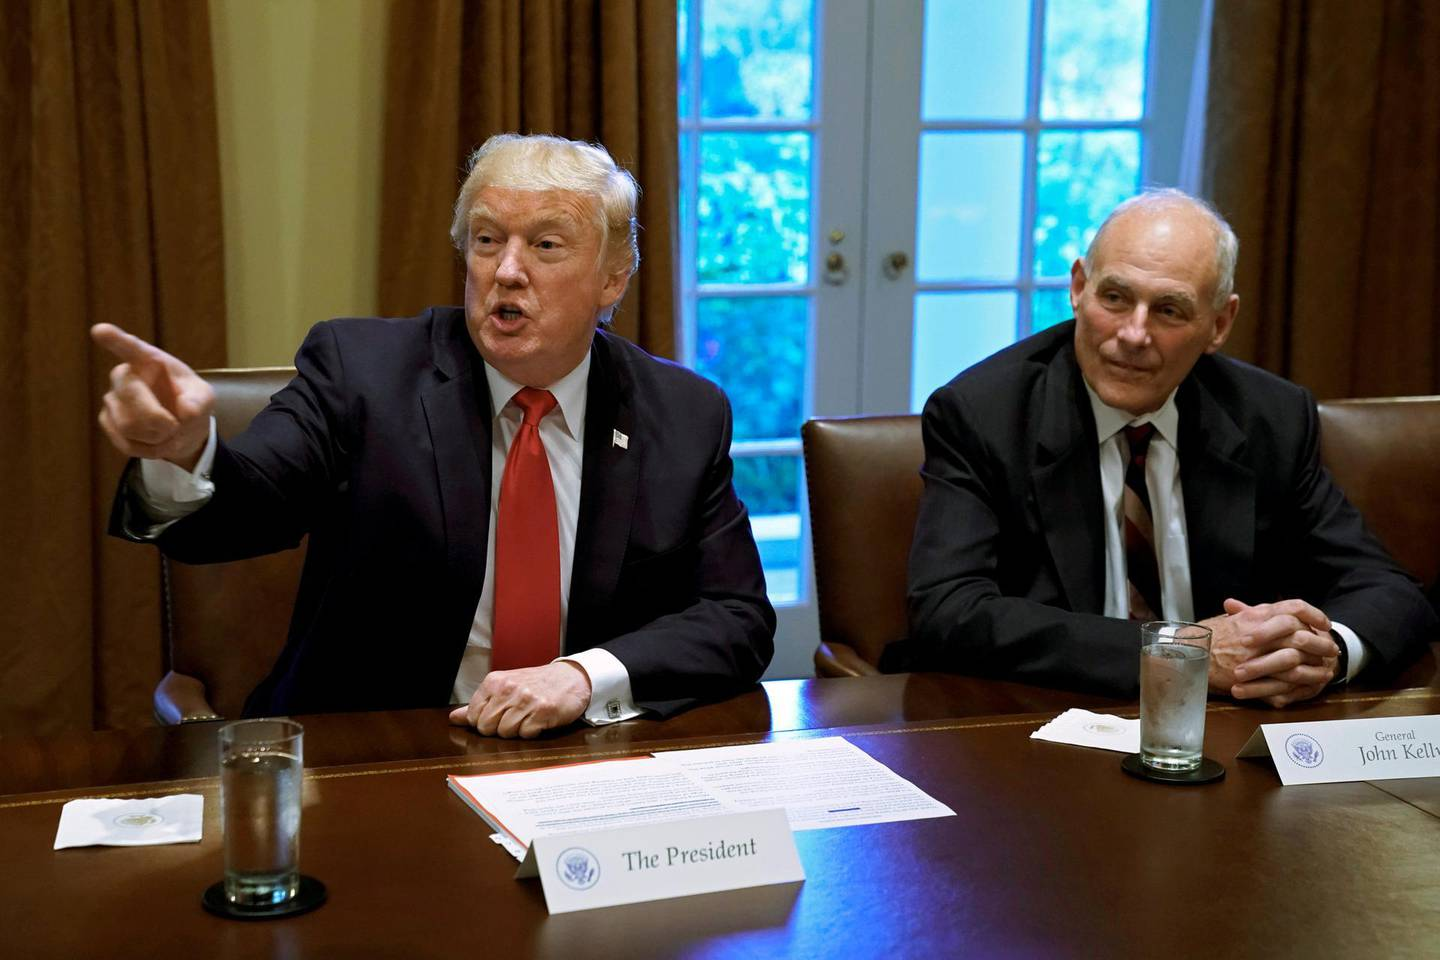 FILE PHOTO: U.S. President Donald Trump gestures next to White House Chief of Staff John Kelly during a briefing with senior military leaders at the White House in Washington, DC, U.S., October 5, 2017. REUTERS/Yuri Gripas/File Photo